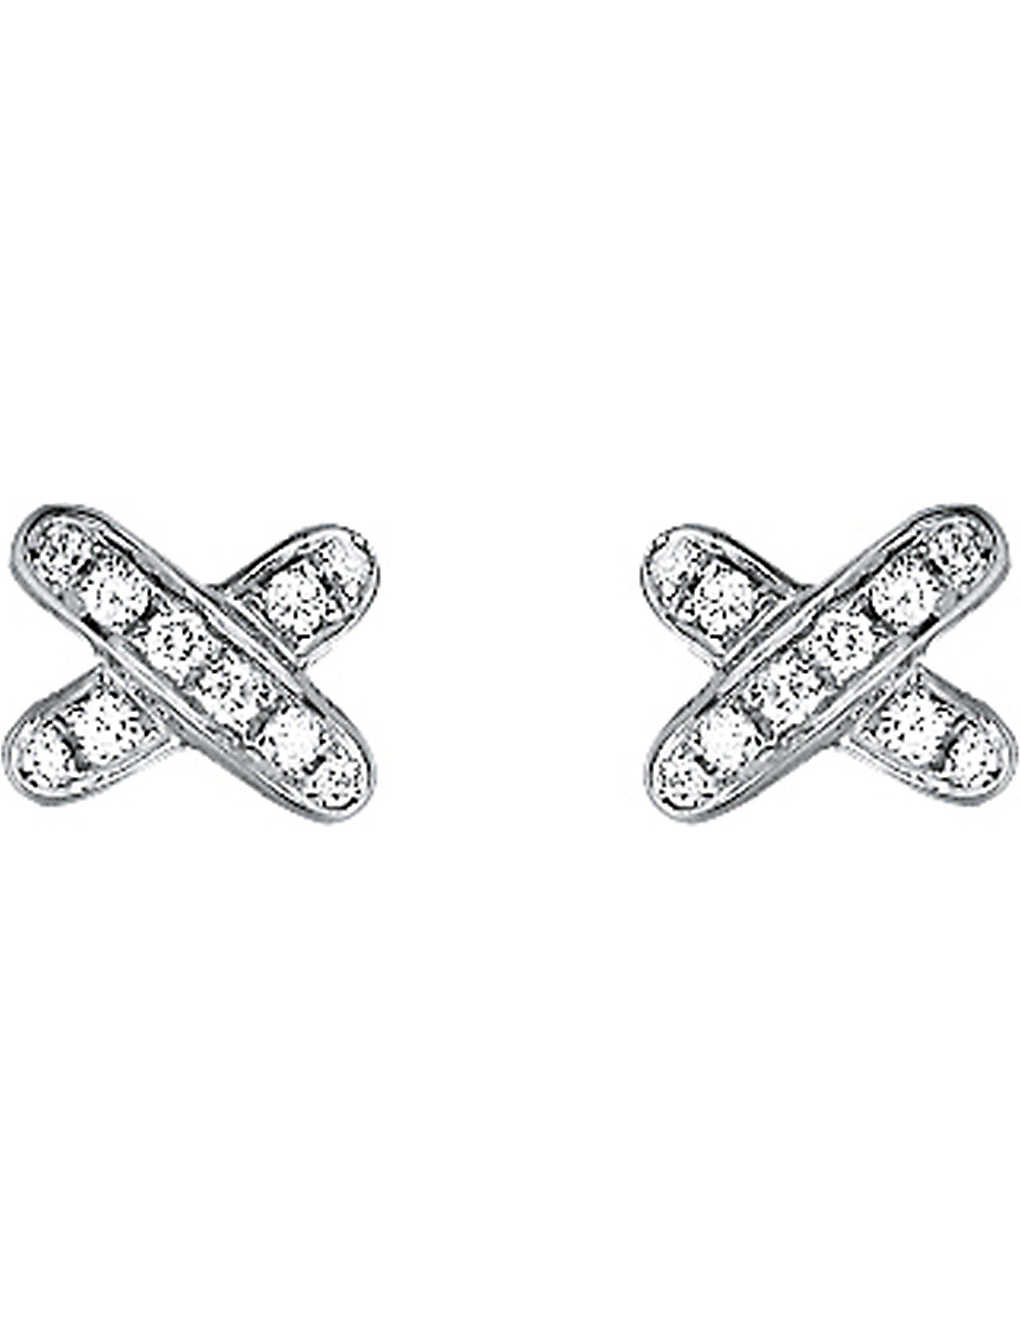 CHAUMET: Jeux de Liens 18ct white-gold and diamond earrings